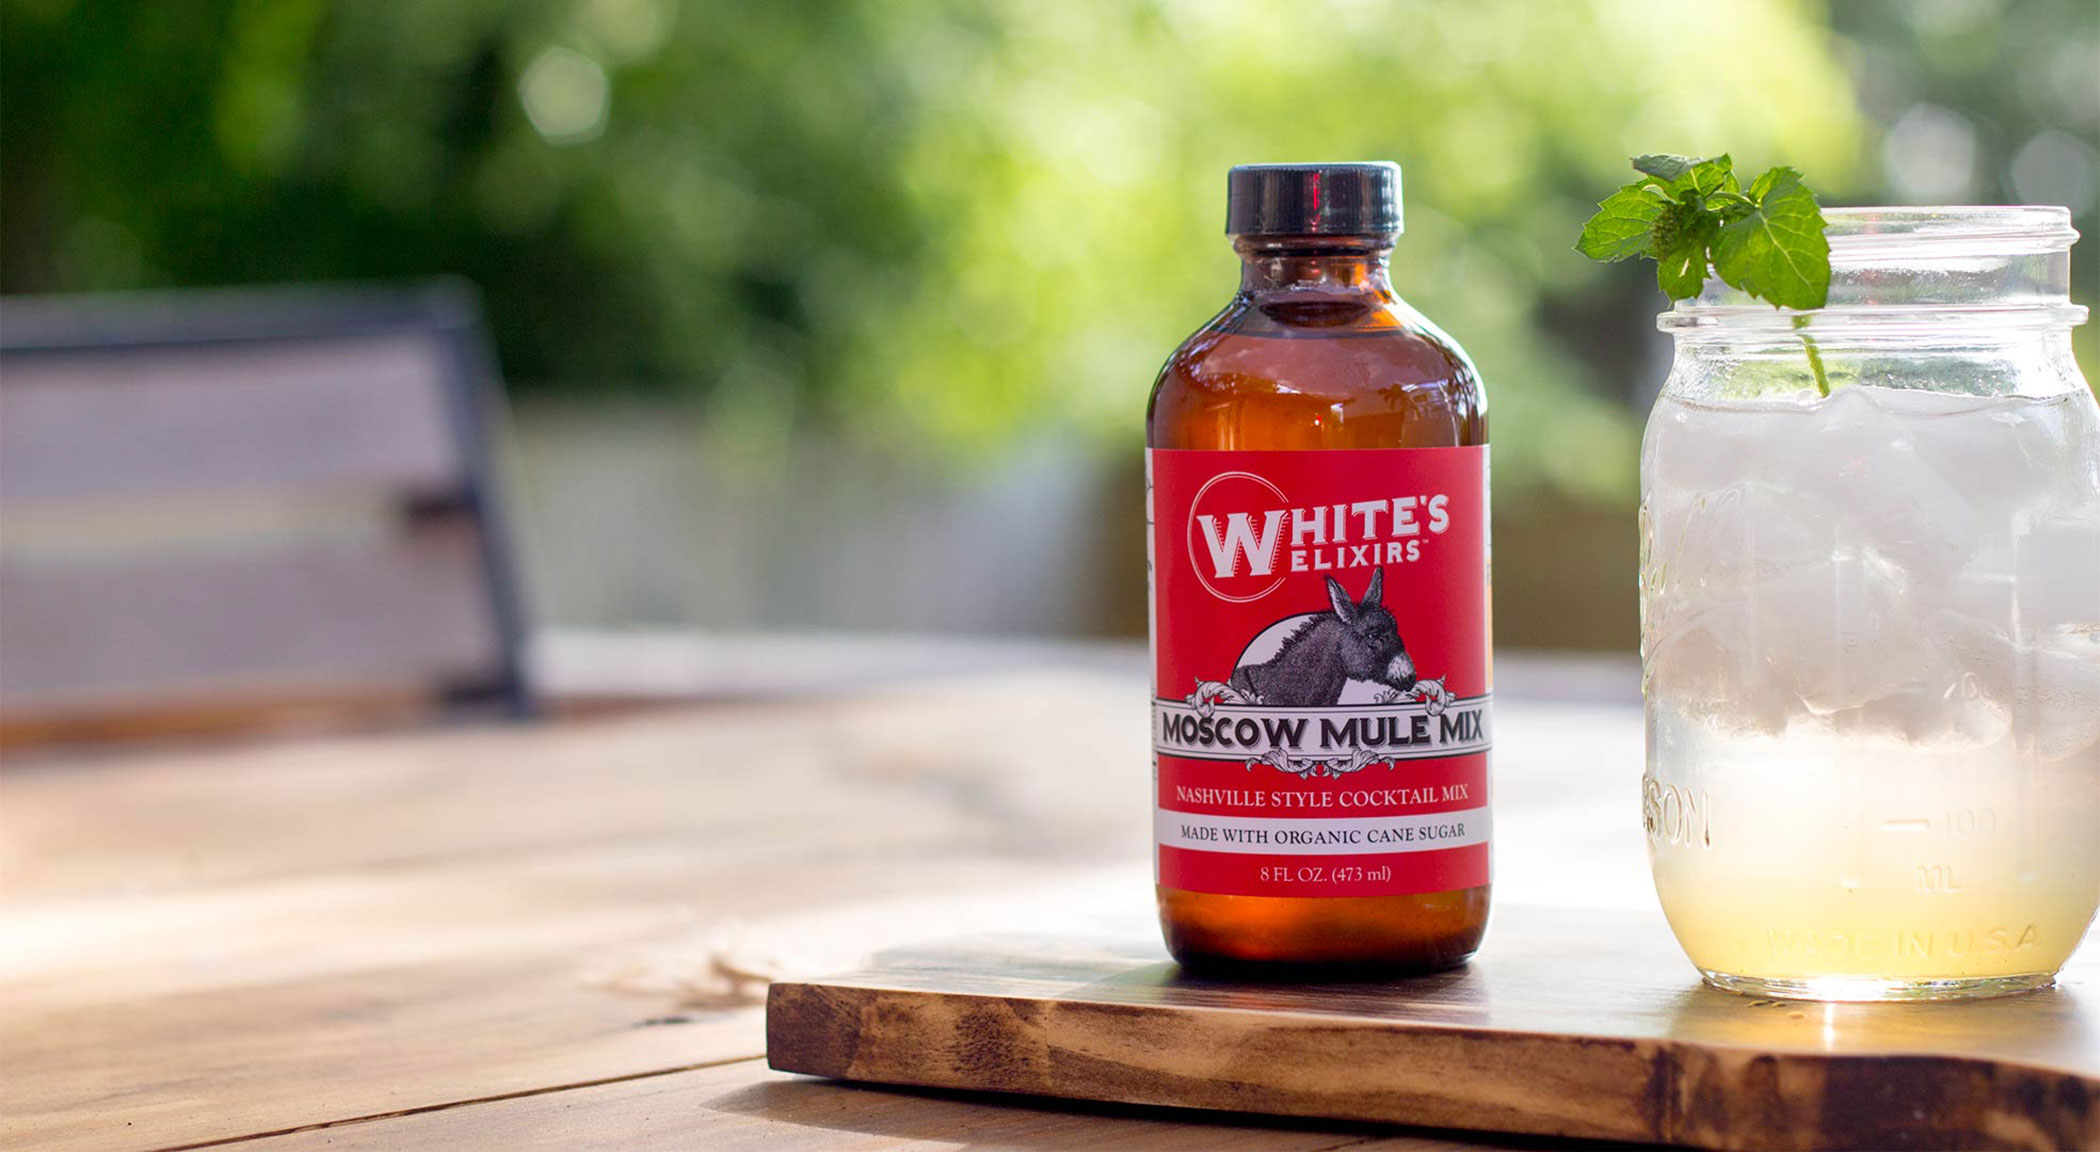 White's Elixirs Moscow Mule mix